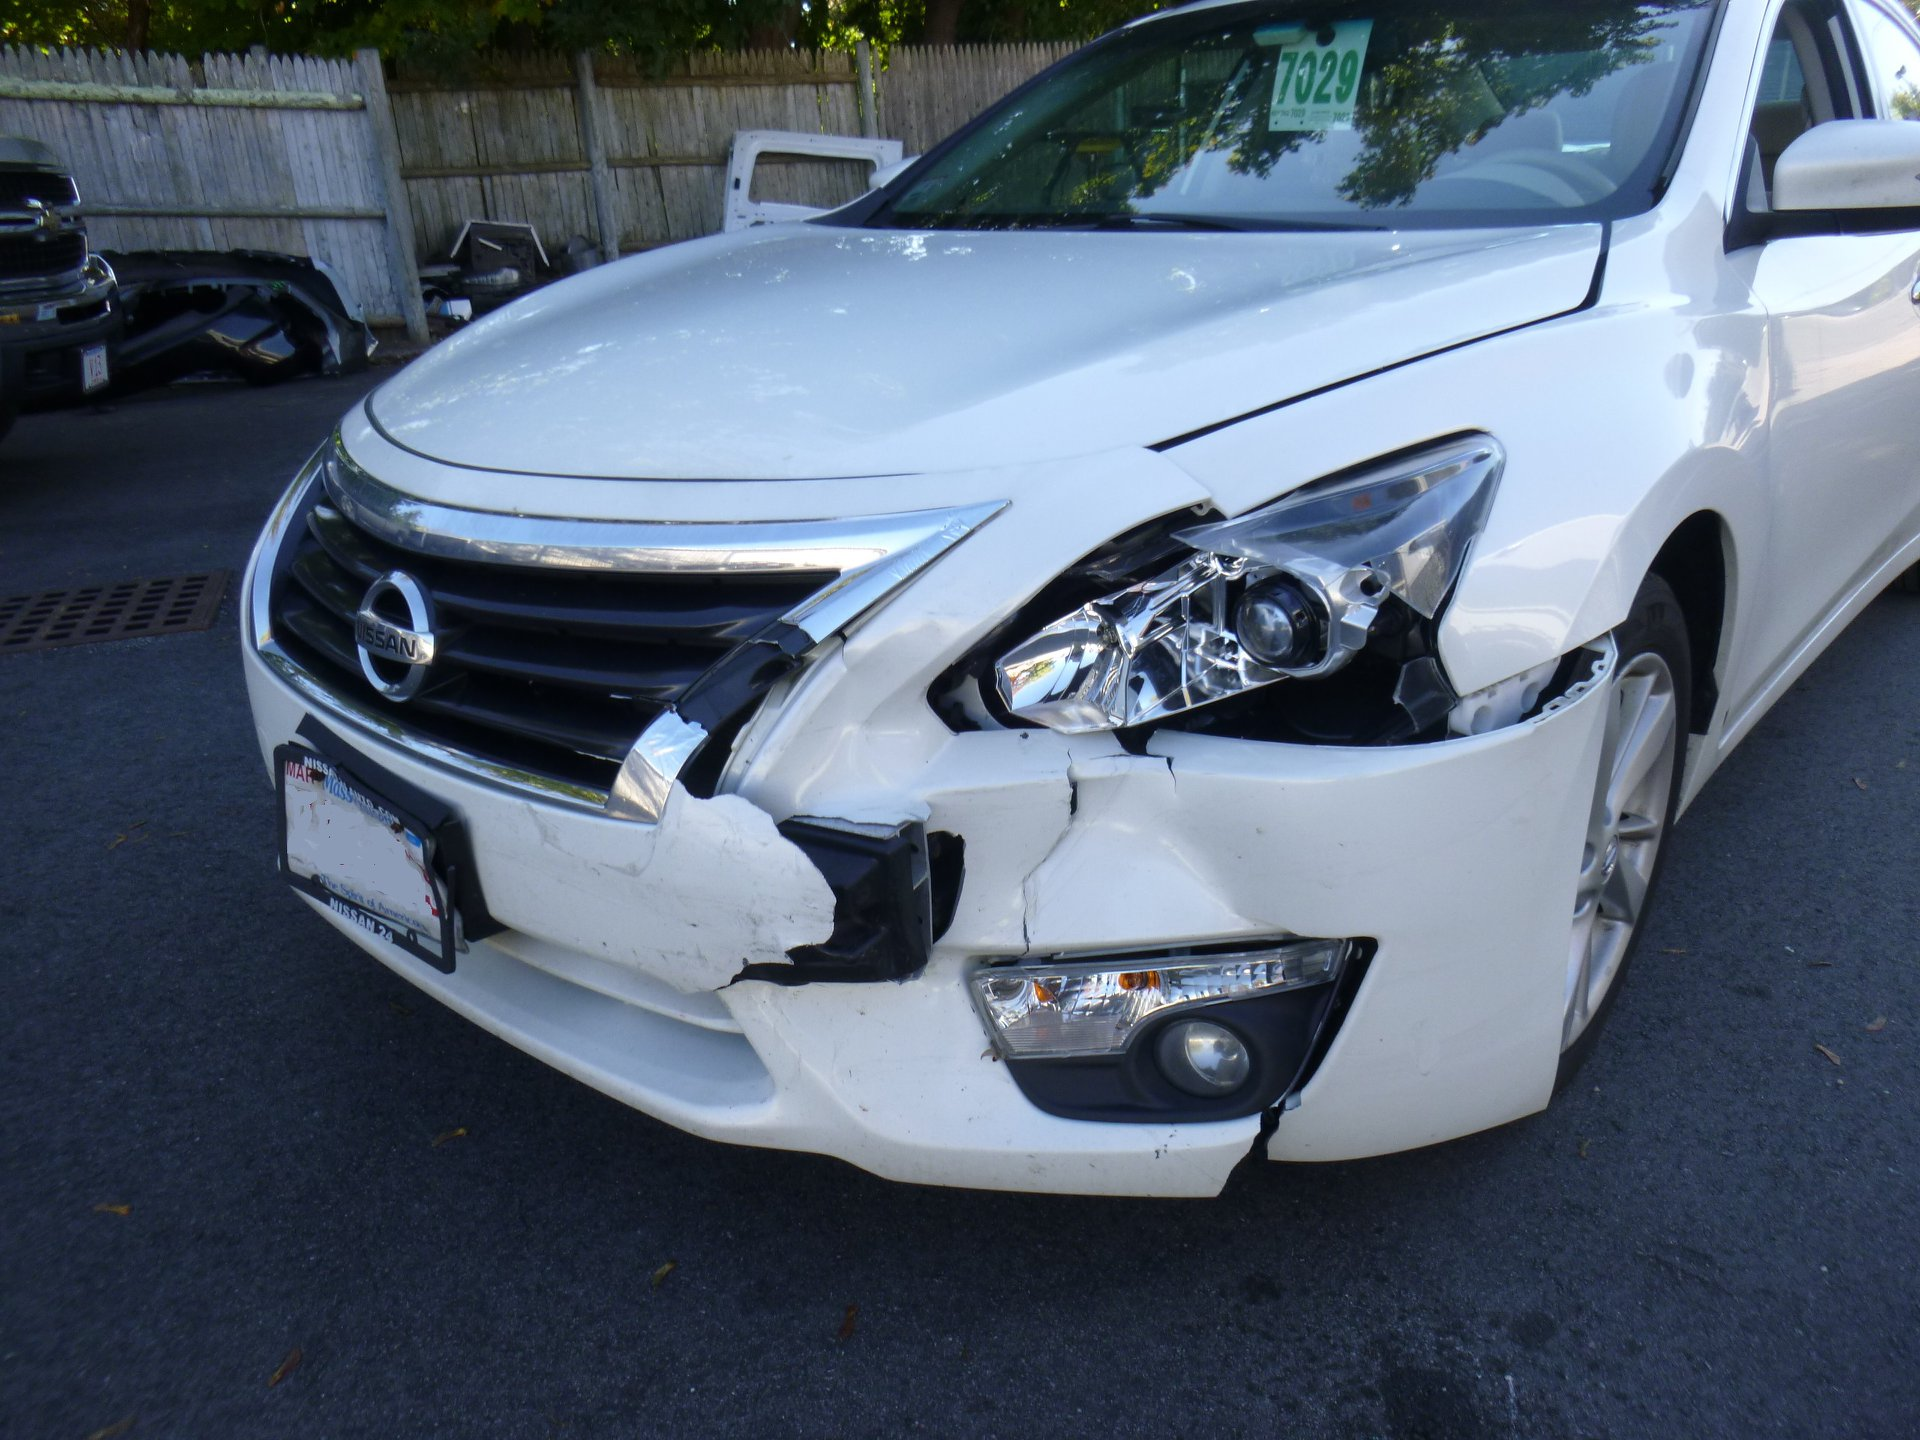 WHITE ALTIMA BEFORE